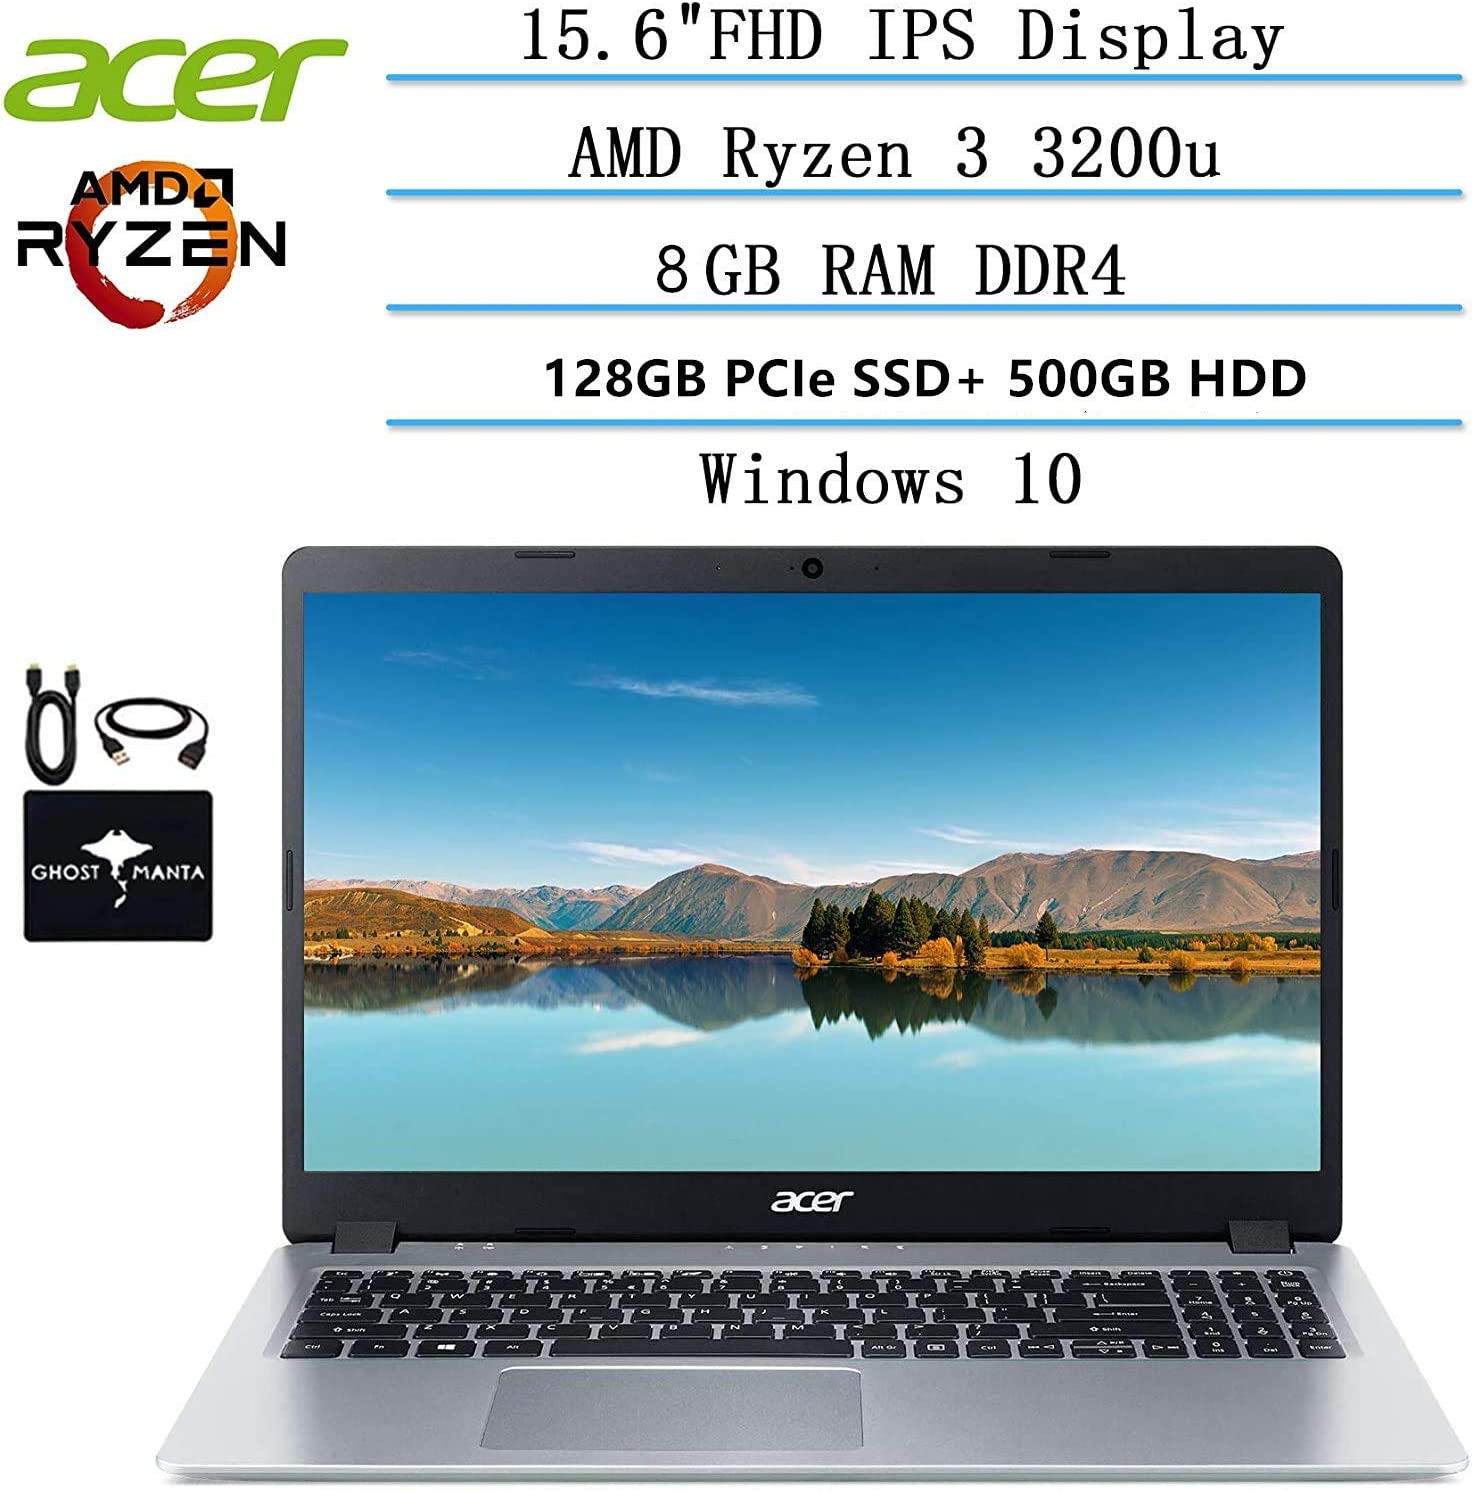 2020 Newest Acer Aspire 5 Slim Laptop 15.6 FHD IPS Display, AMD Ryzen 3 3200u-Dual Core (up to 3.5GHz), Vega 3 Graphics, 8GB RAM, 128GB PCIe SSD + 500GB HDD, Windows 10 w/Ghost Manta Accessories